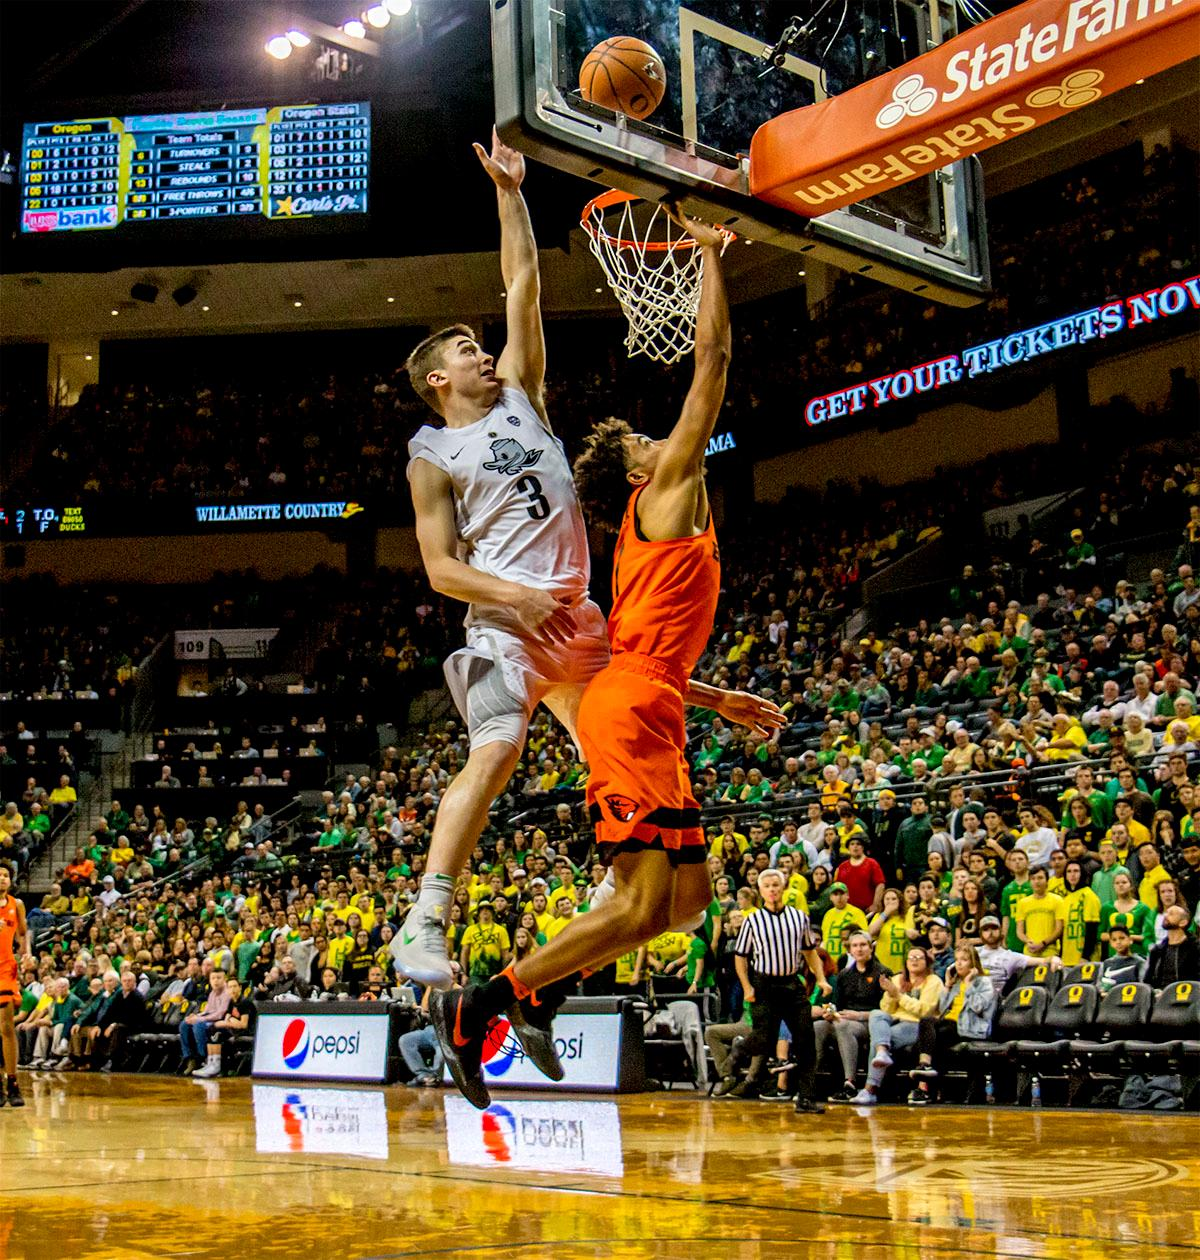 The Beaver's Stephen Thompson Jr. (#1) goes up for the basket as the Duck's Payton Pritchard (#3) attempts to defend the basket. The Ducks defeated the Beavers in the civil war game, 66-57, at Matthew Knight Arena on Saturday night. Elijah Brown scored a game high of 20 points with 18 of the points coming in the first half, Paul White added 17 points. The Ducks are now 14-7 overall and 4-4 in conference play. The Ducks will next face California on Thursday Feb. 1 at 6:00 p.m. Photo by August Frank, Oregon News Lab